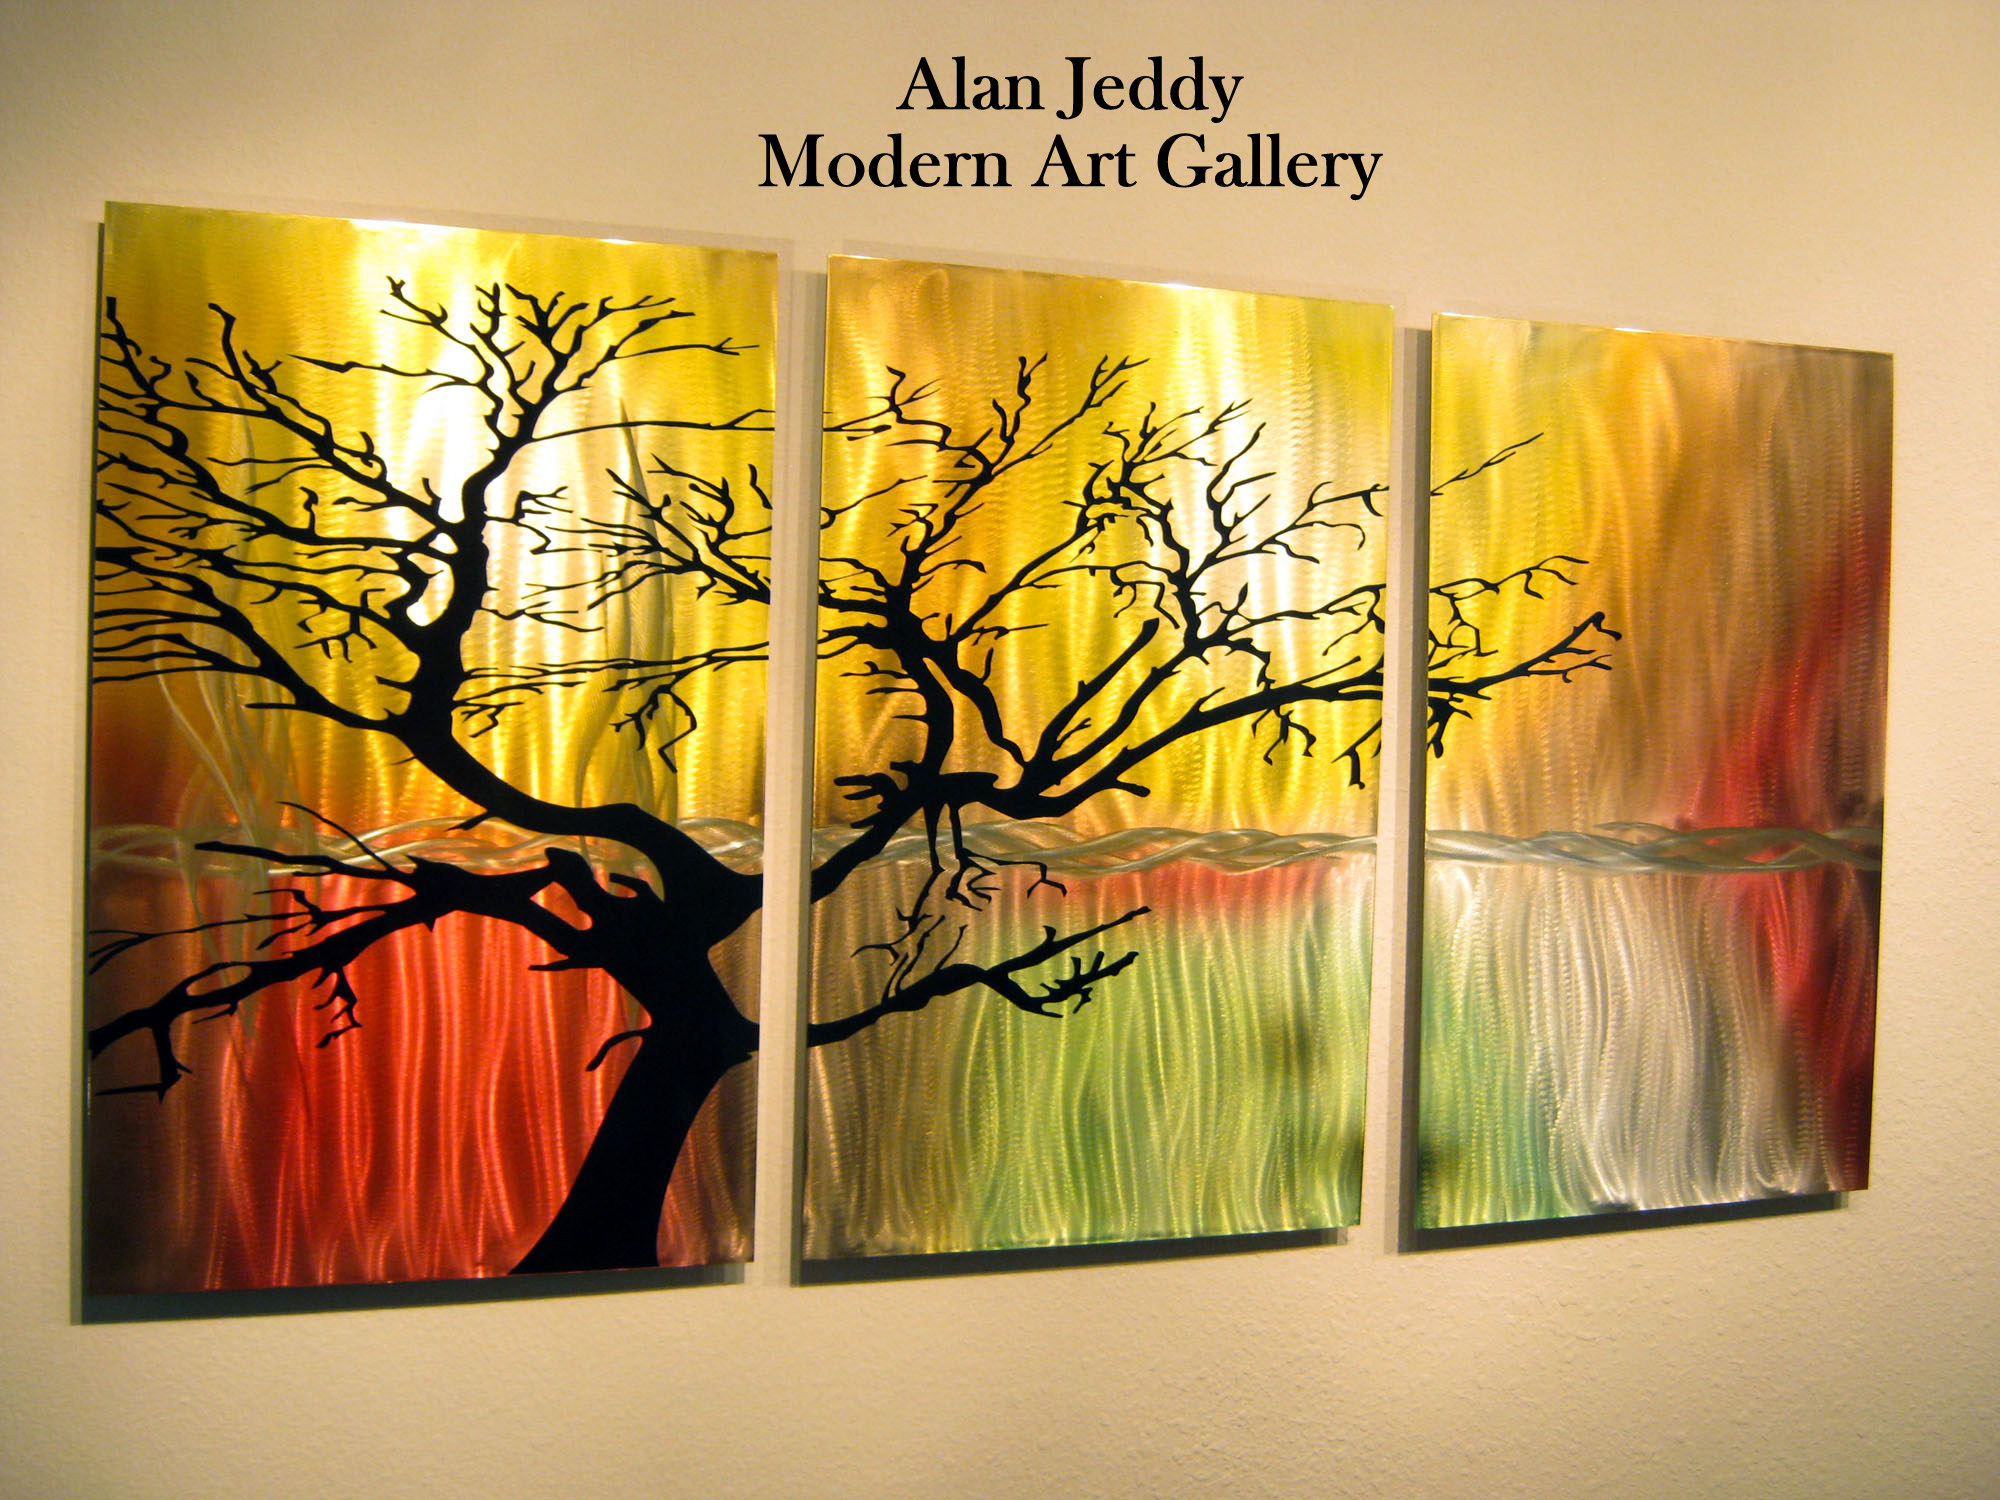 Alan Jeddy